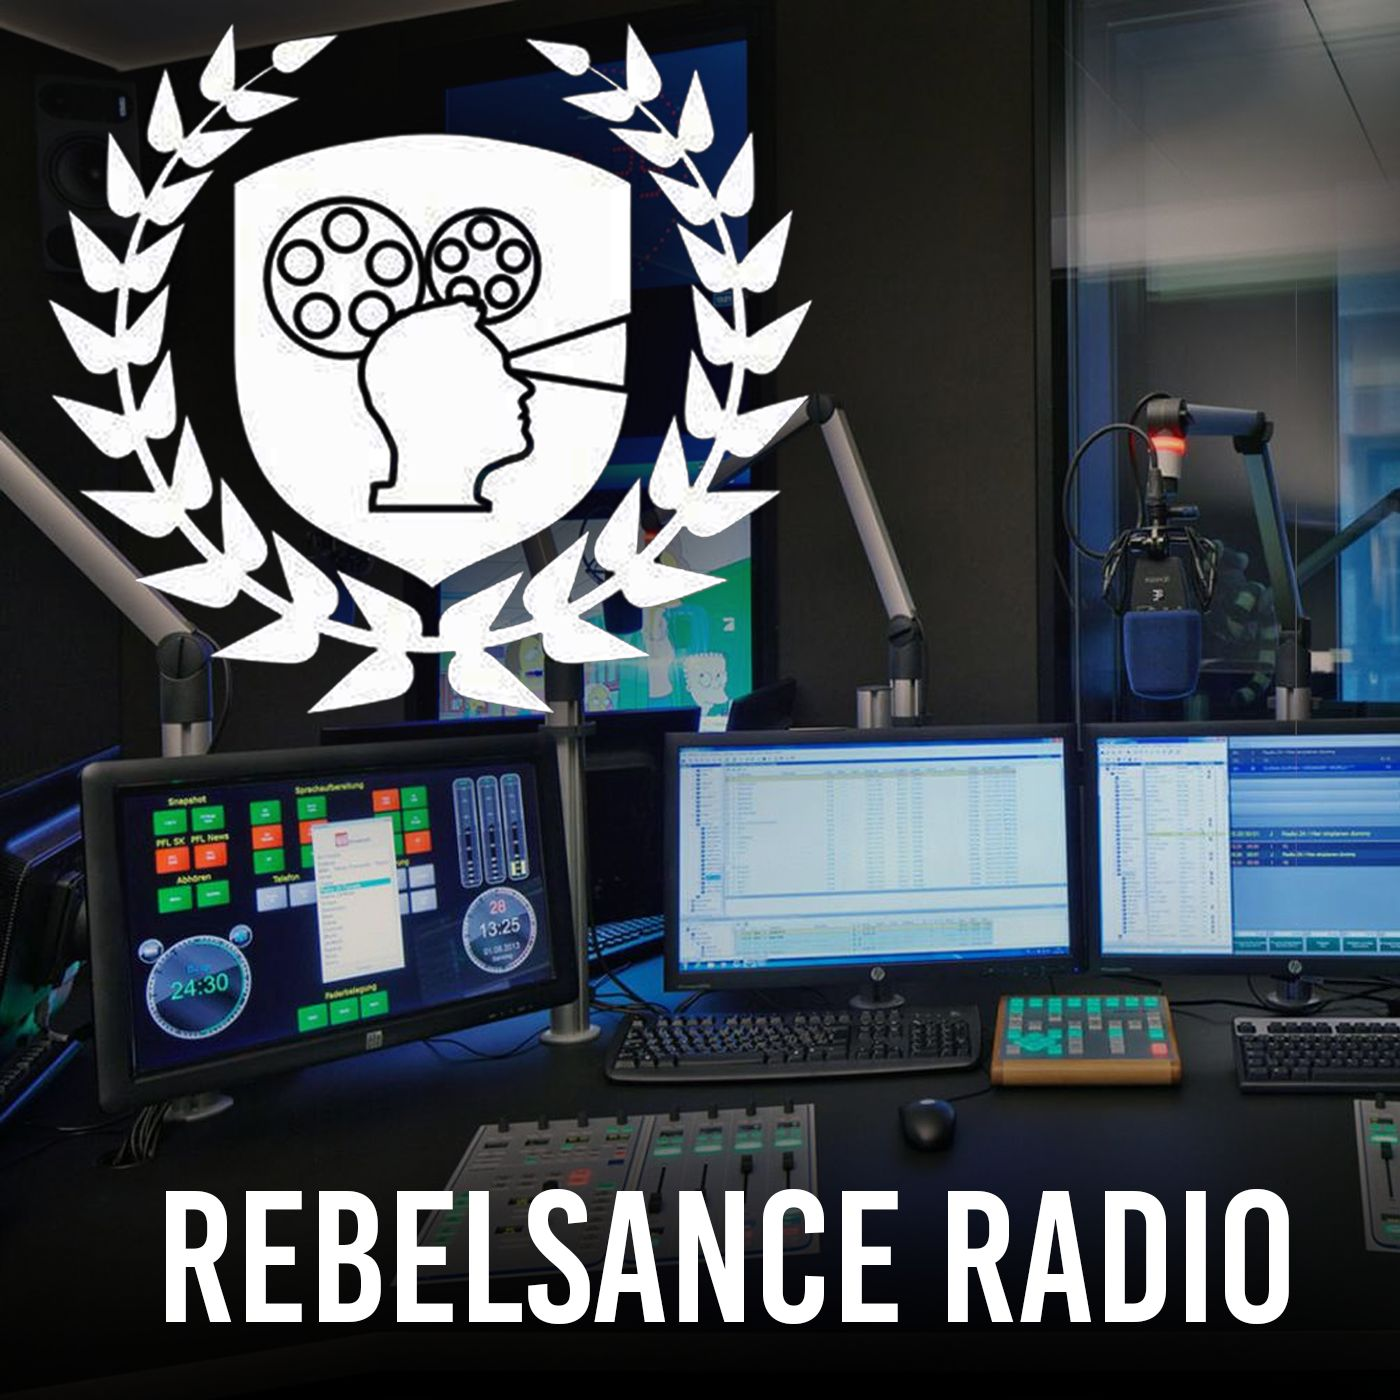 Rebelsance Radio